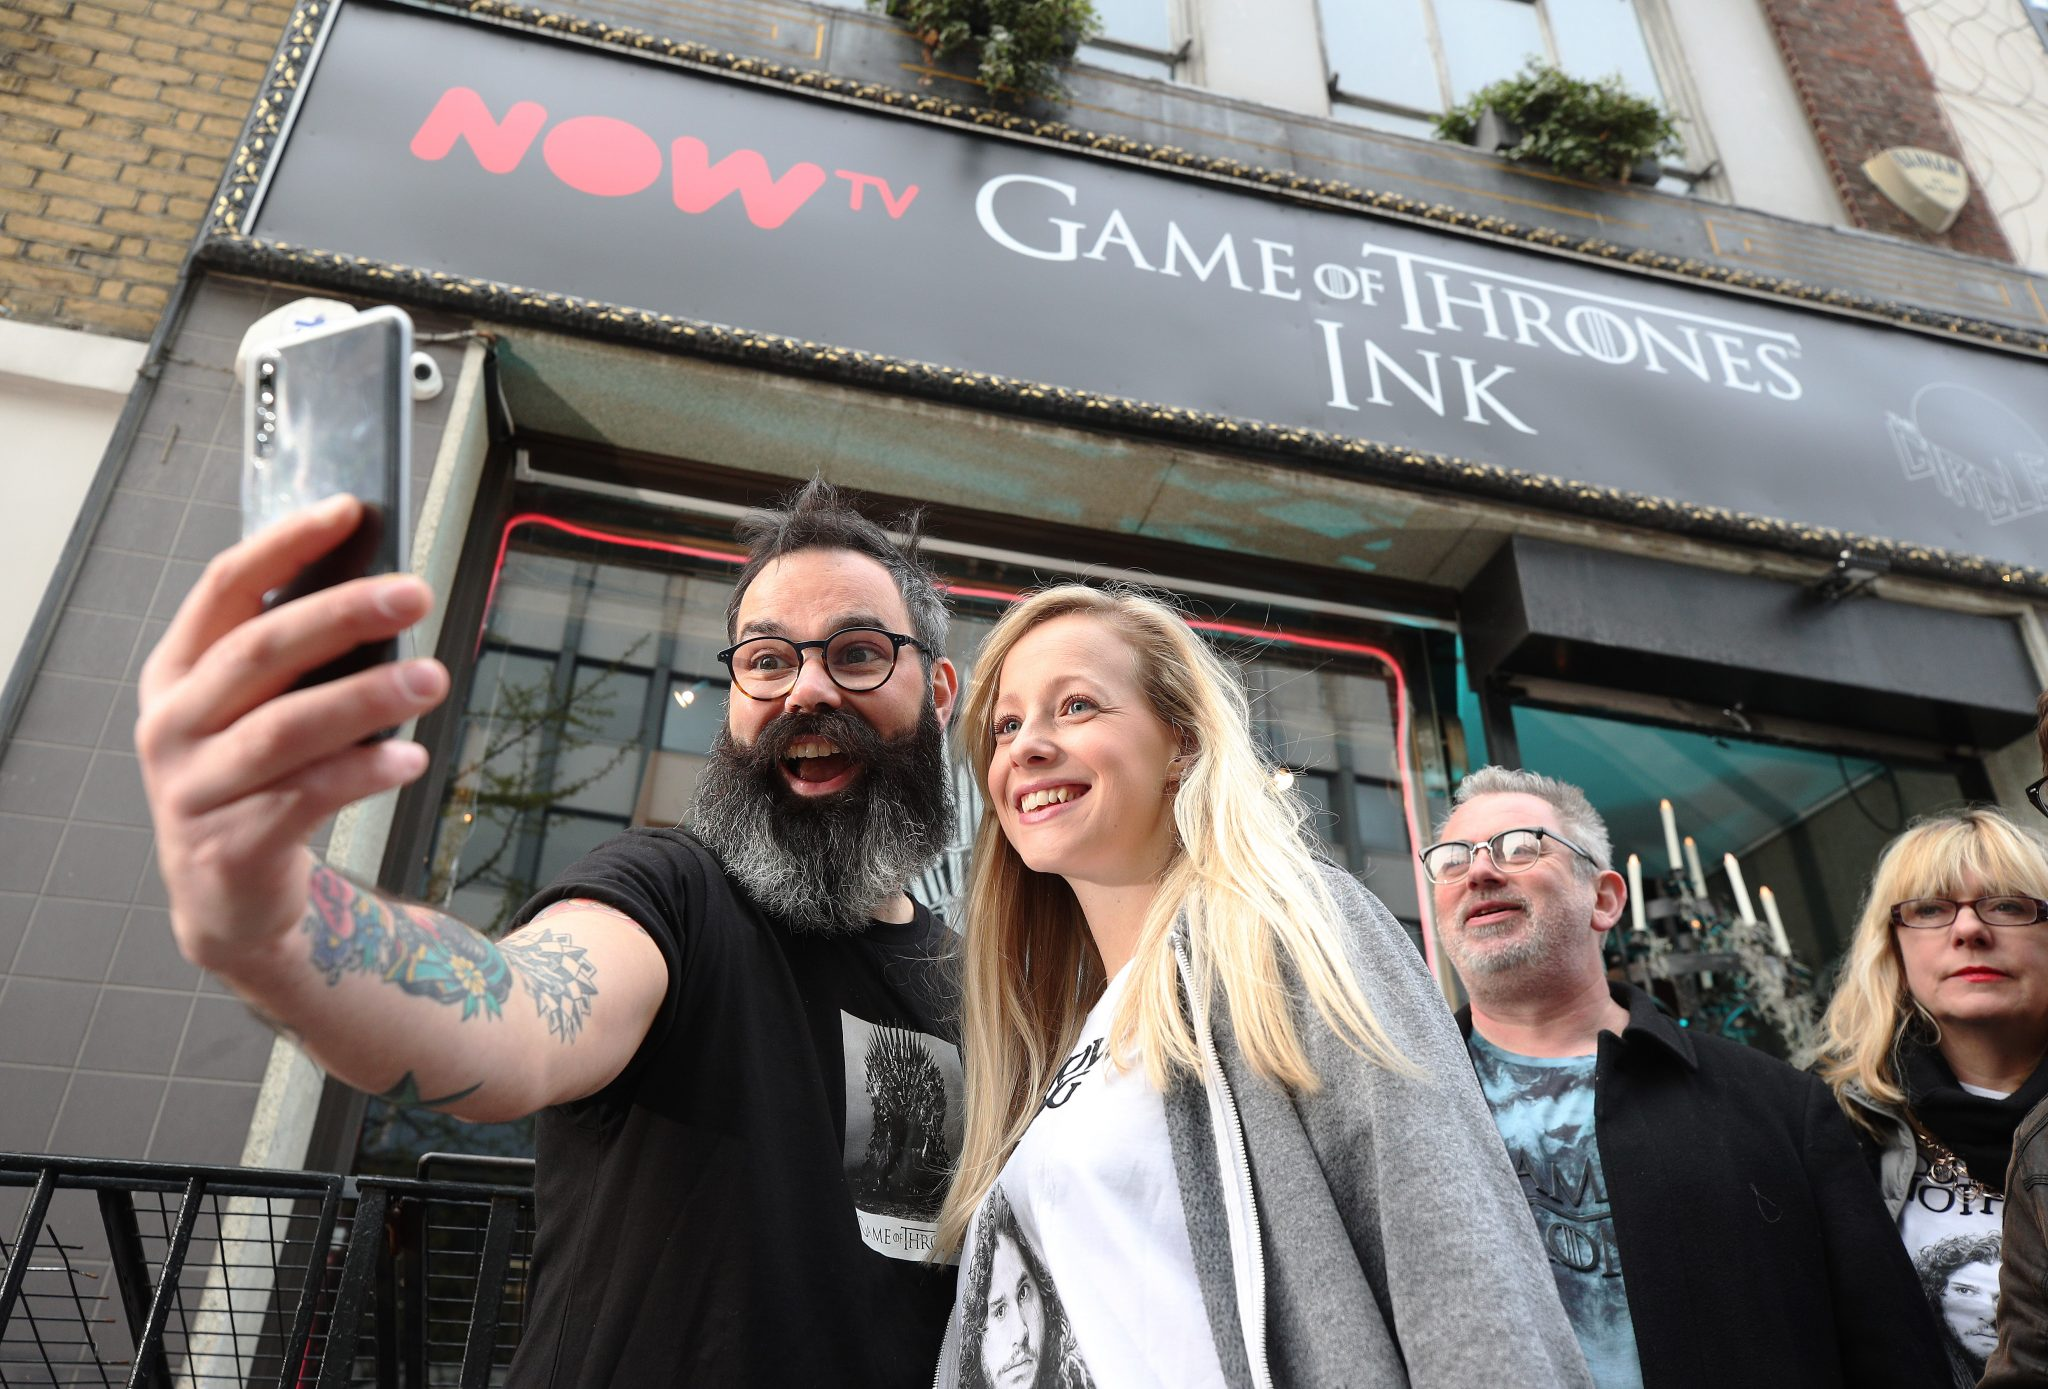 Superfans queue for FREE Game of Thrones tattoos at the NOW TV GoT INK studio. The studio is open on the 16th and 17th of April, to mark the start of Season 8